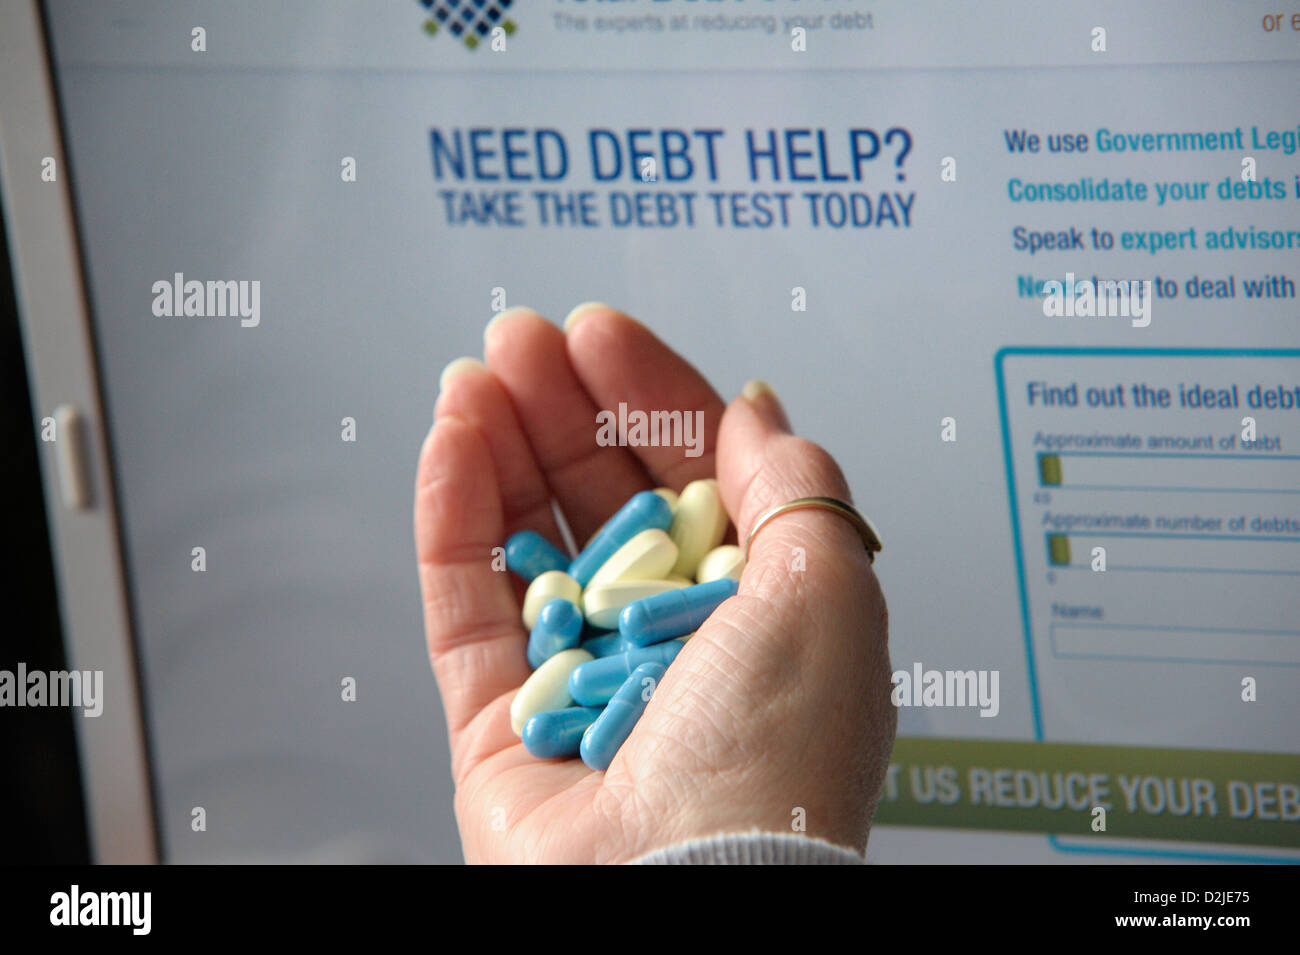 debt help suicide overdose concept image - Stock Image